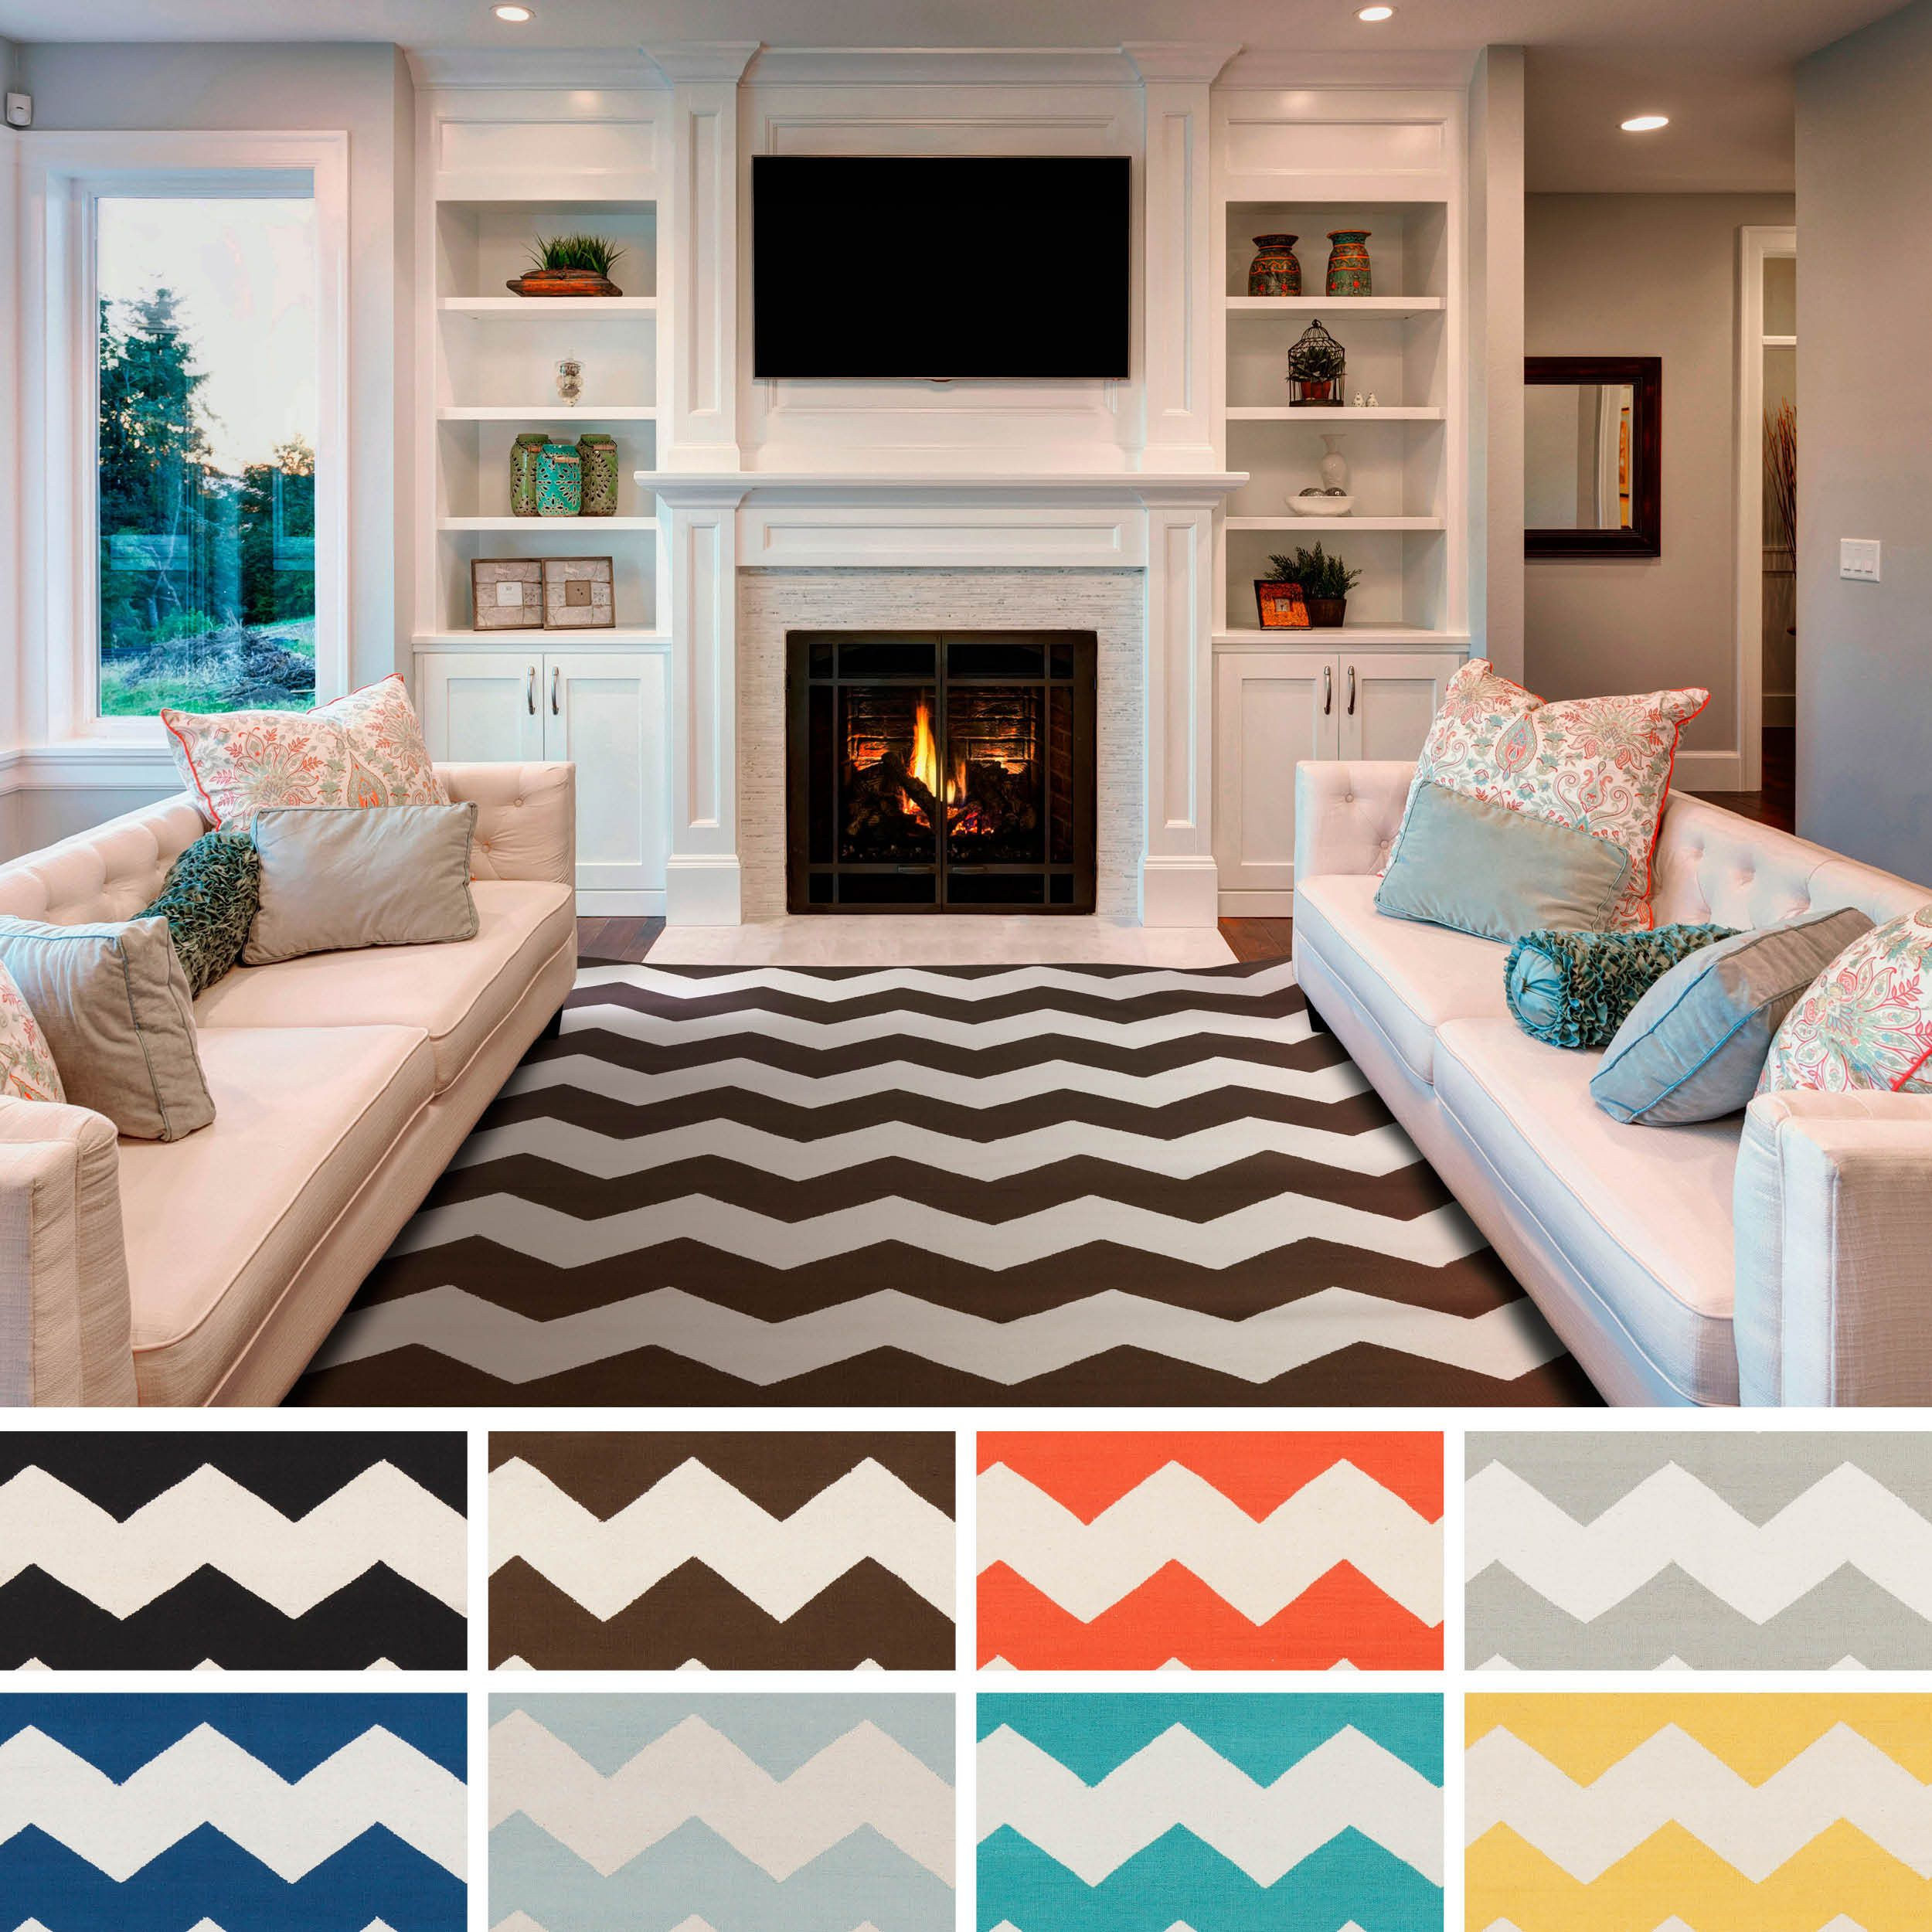 Nuloom geometric chevron kids rug 5 39 3 x 7 39 9 overstock for Living room rugs 6x9